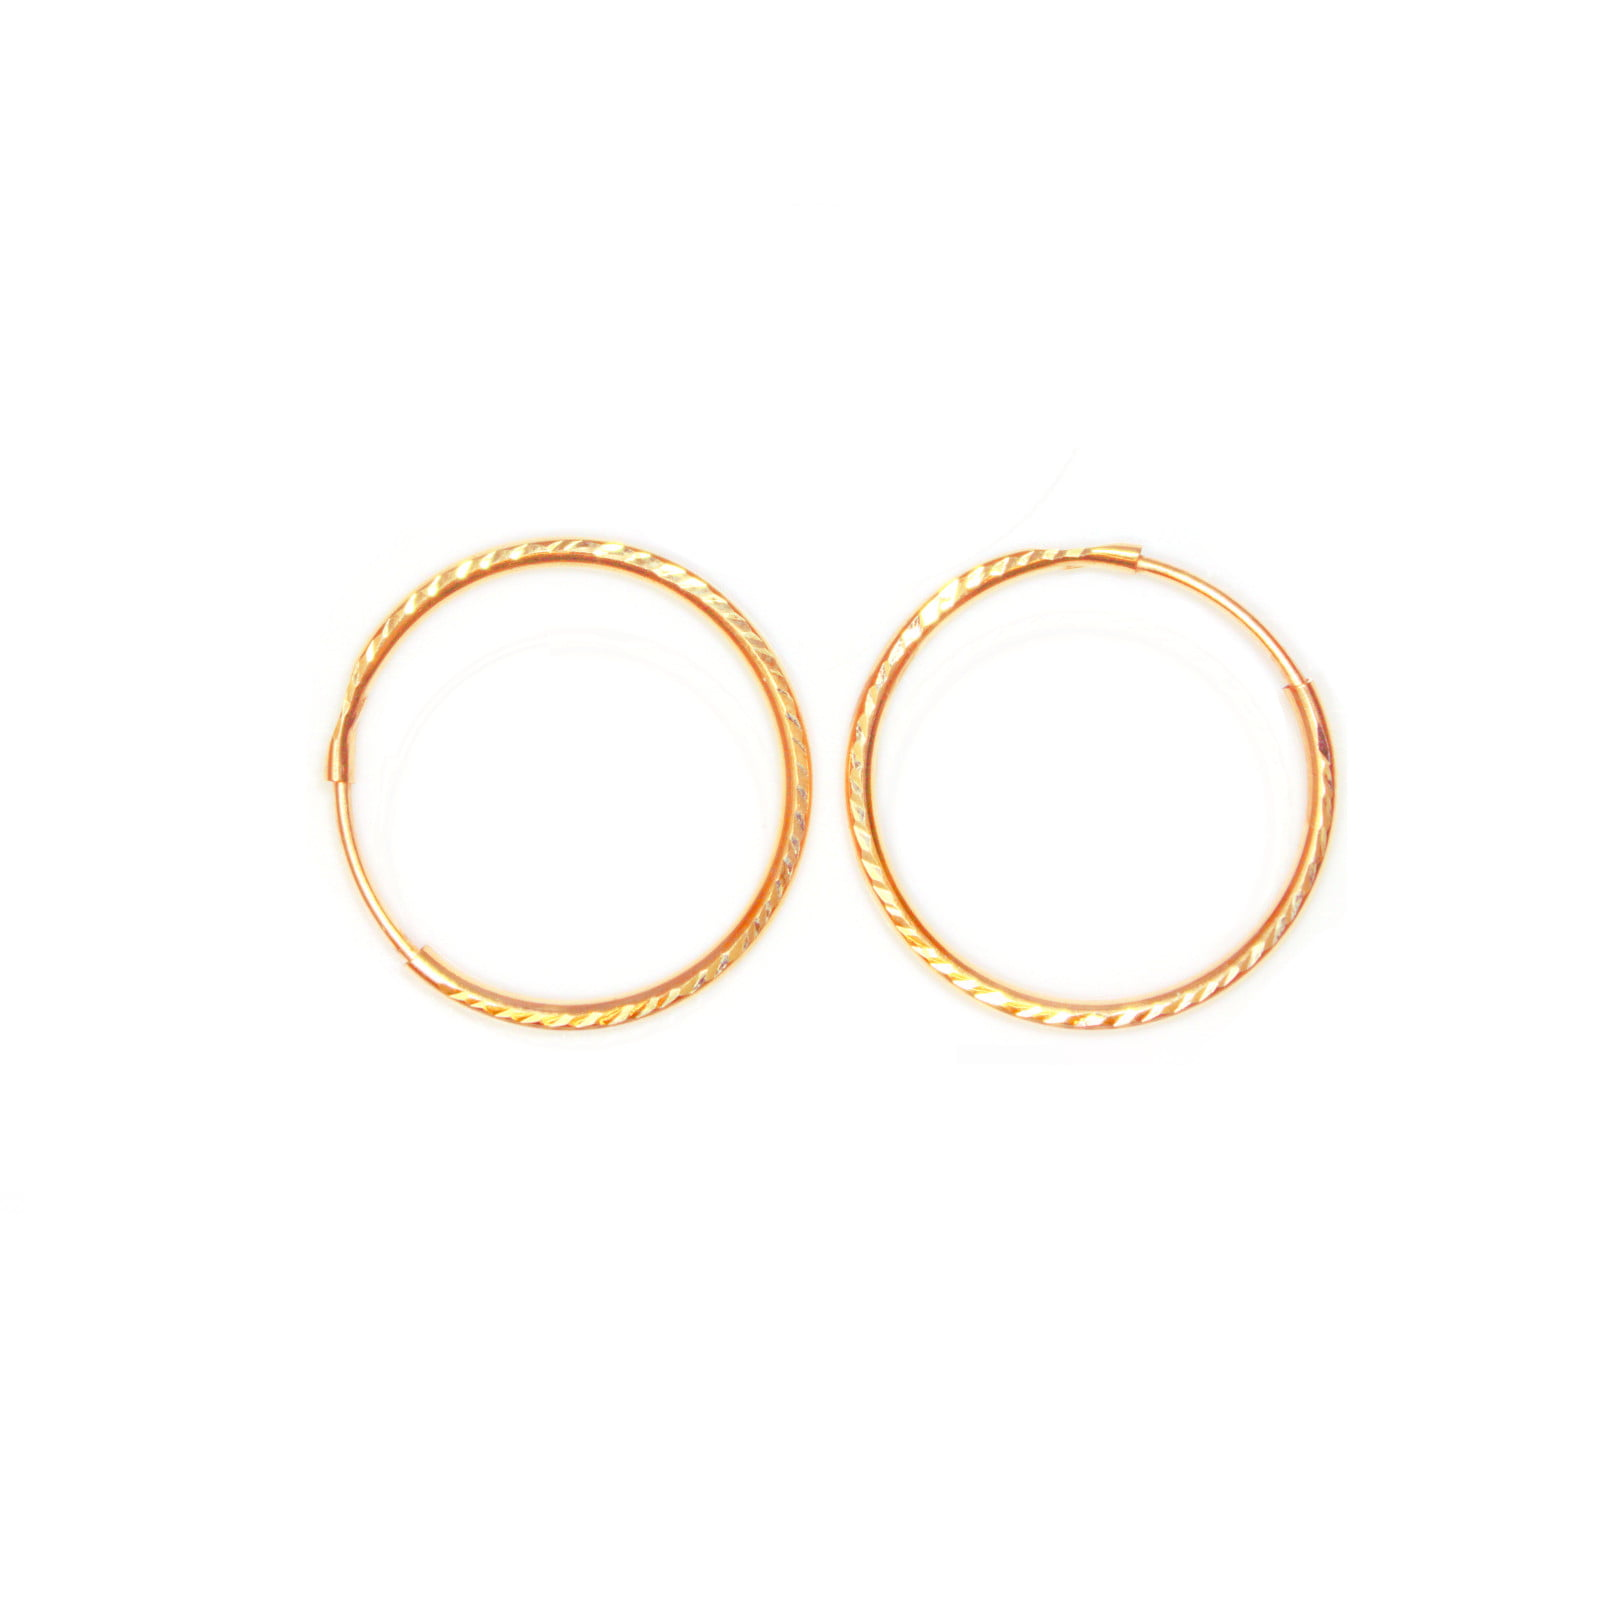 Pair of 18mm 9ct gold hoop earrings. Diamond cut finish and medium weight.